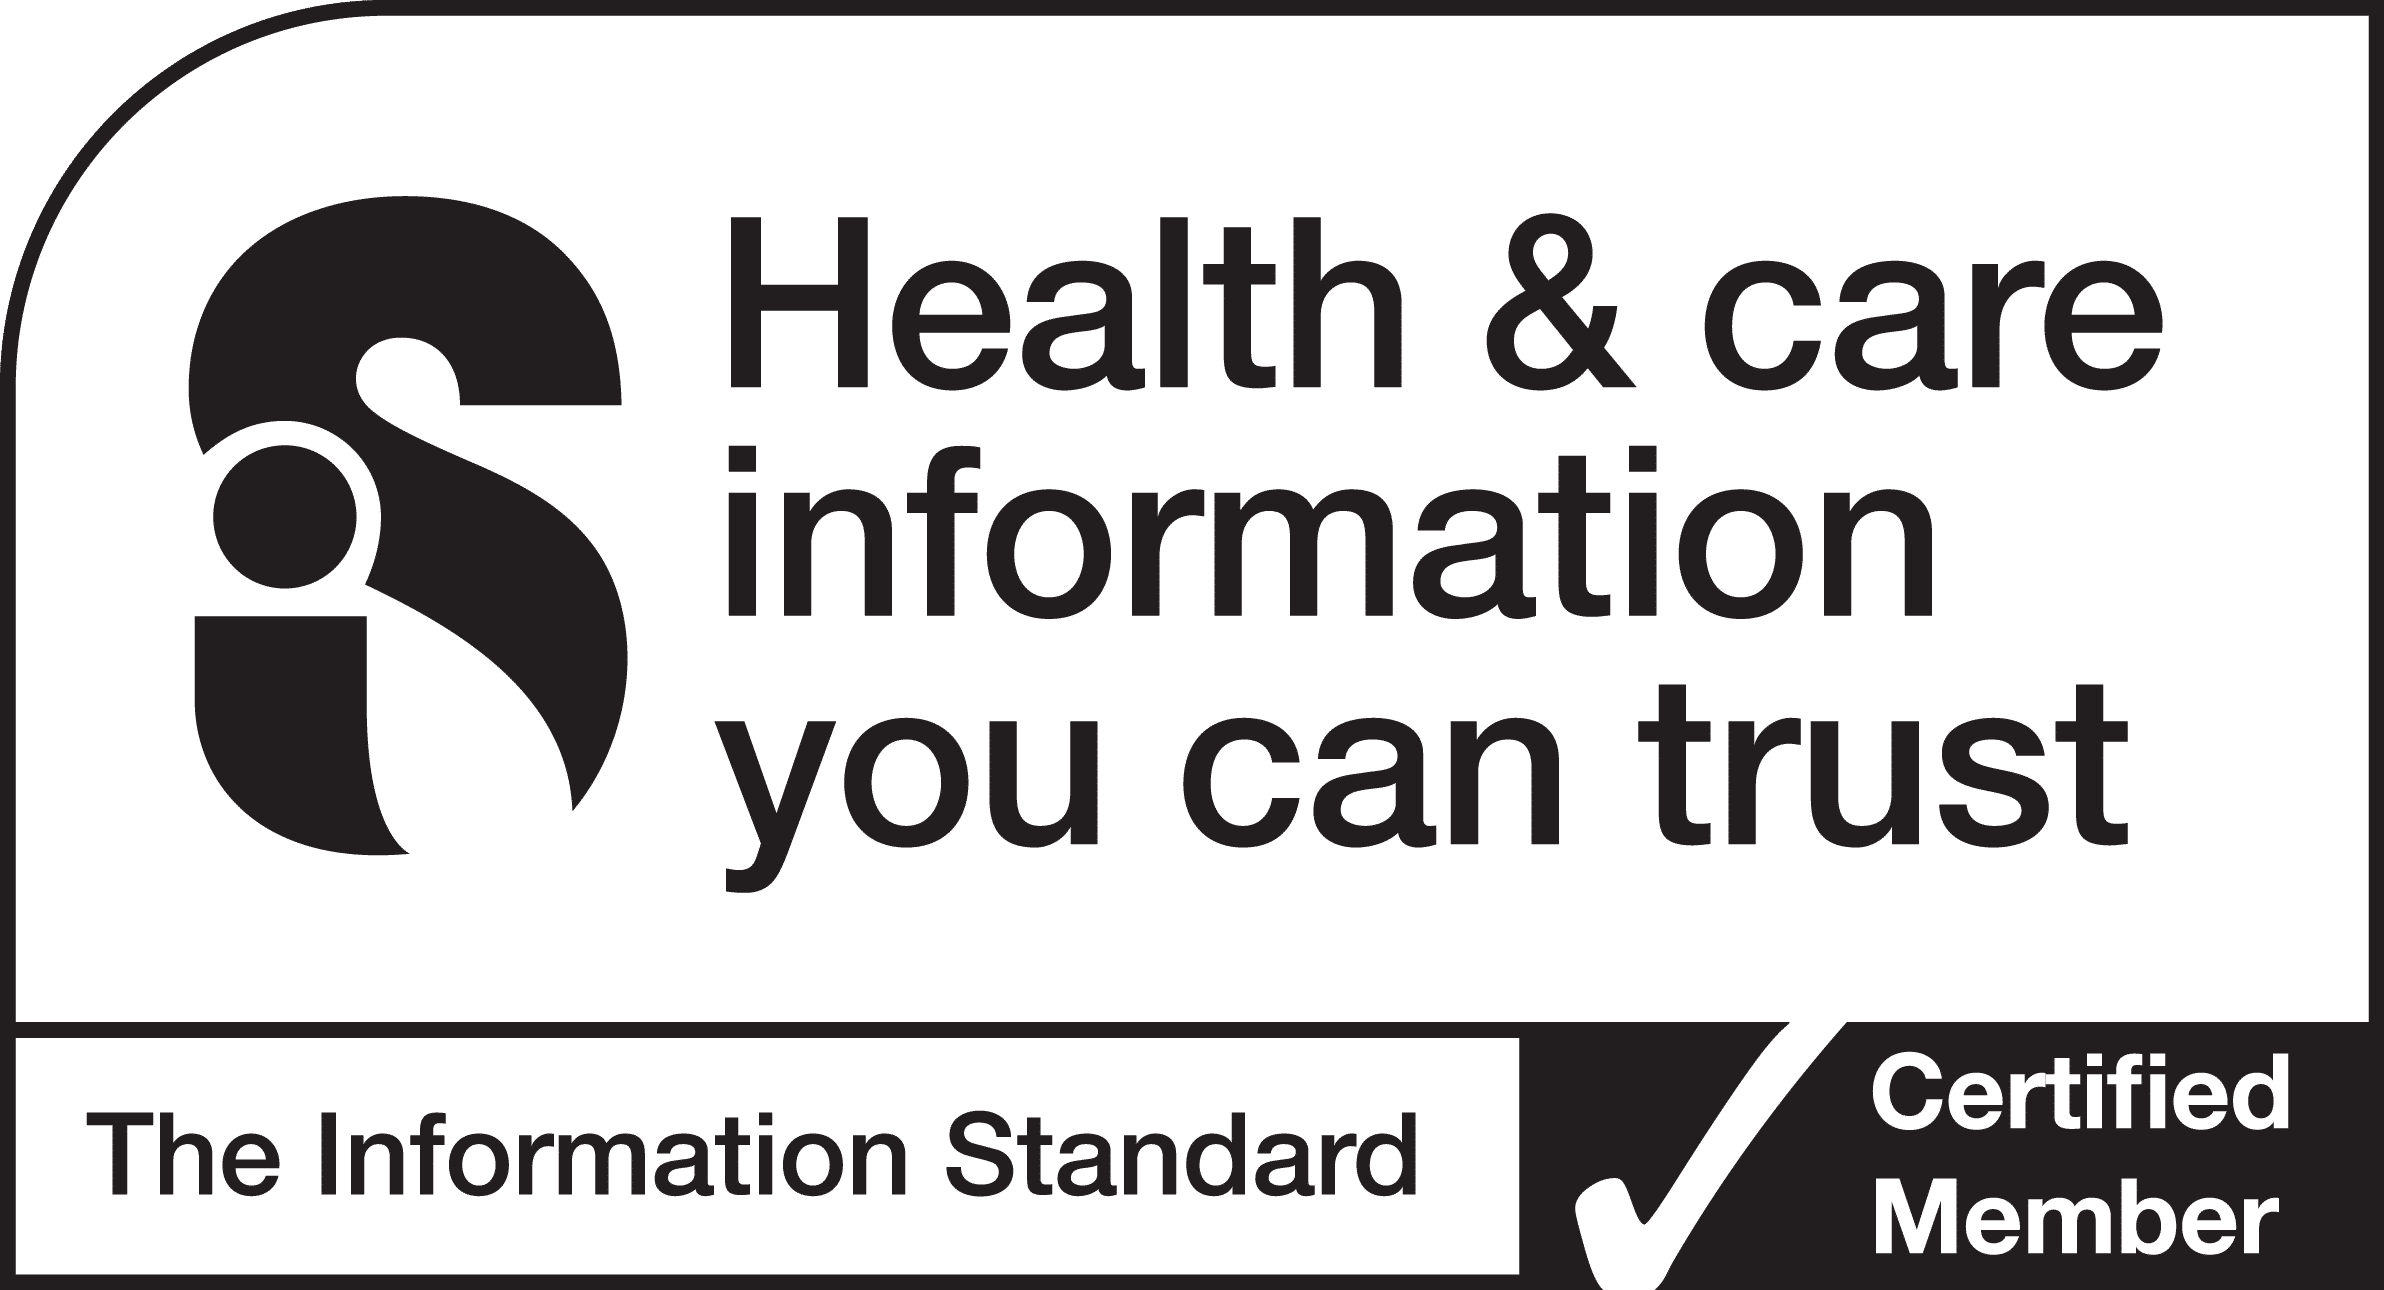 Produced in-line with the Principles and Requirements of NHS England's Information Standard.